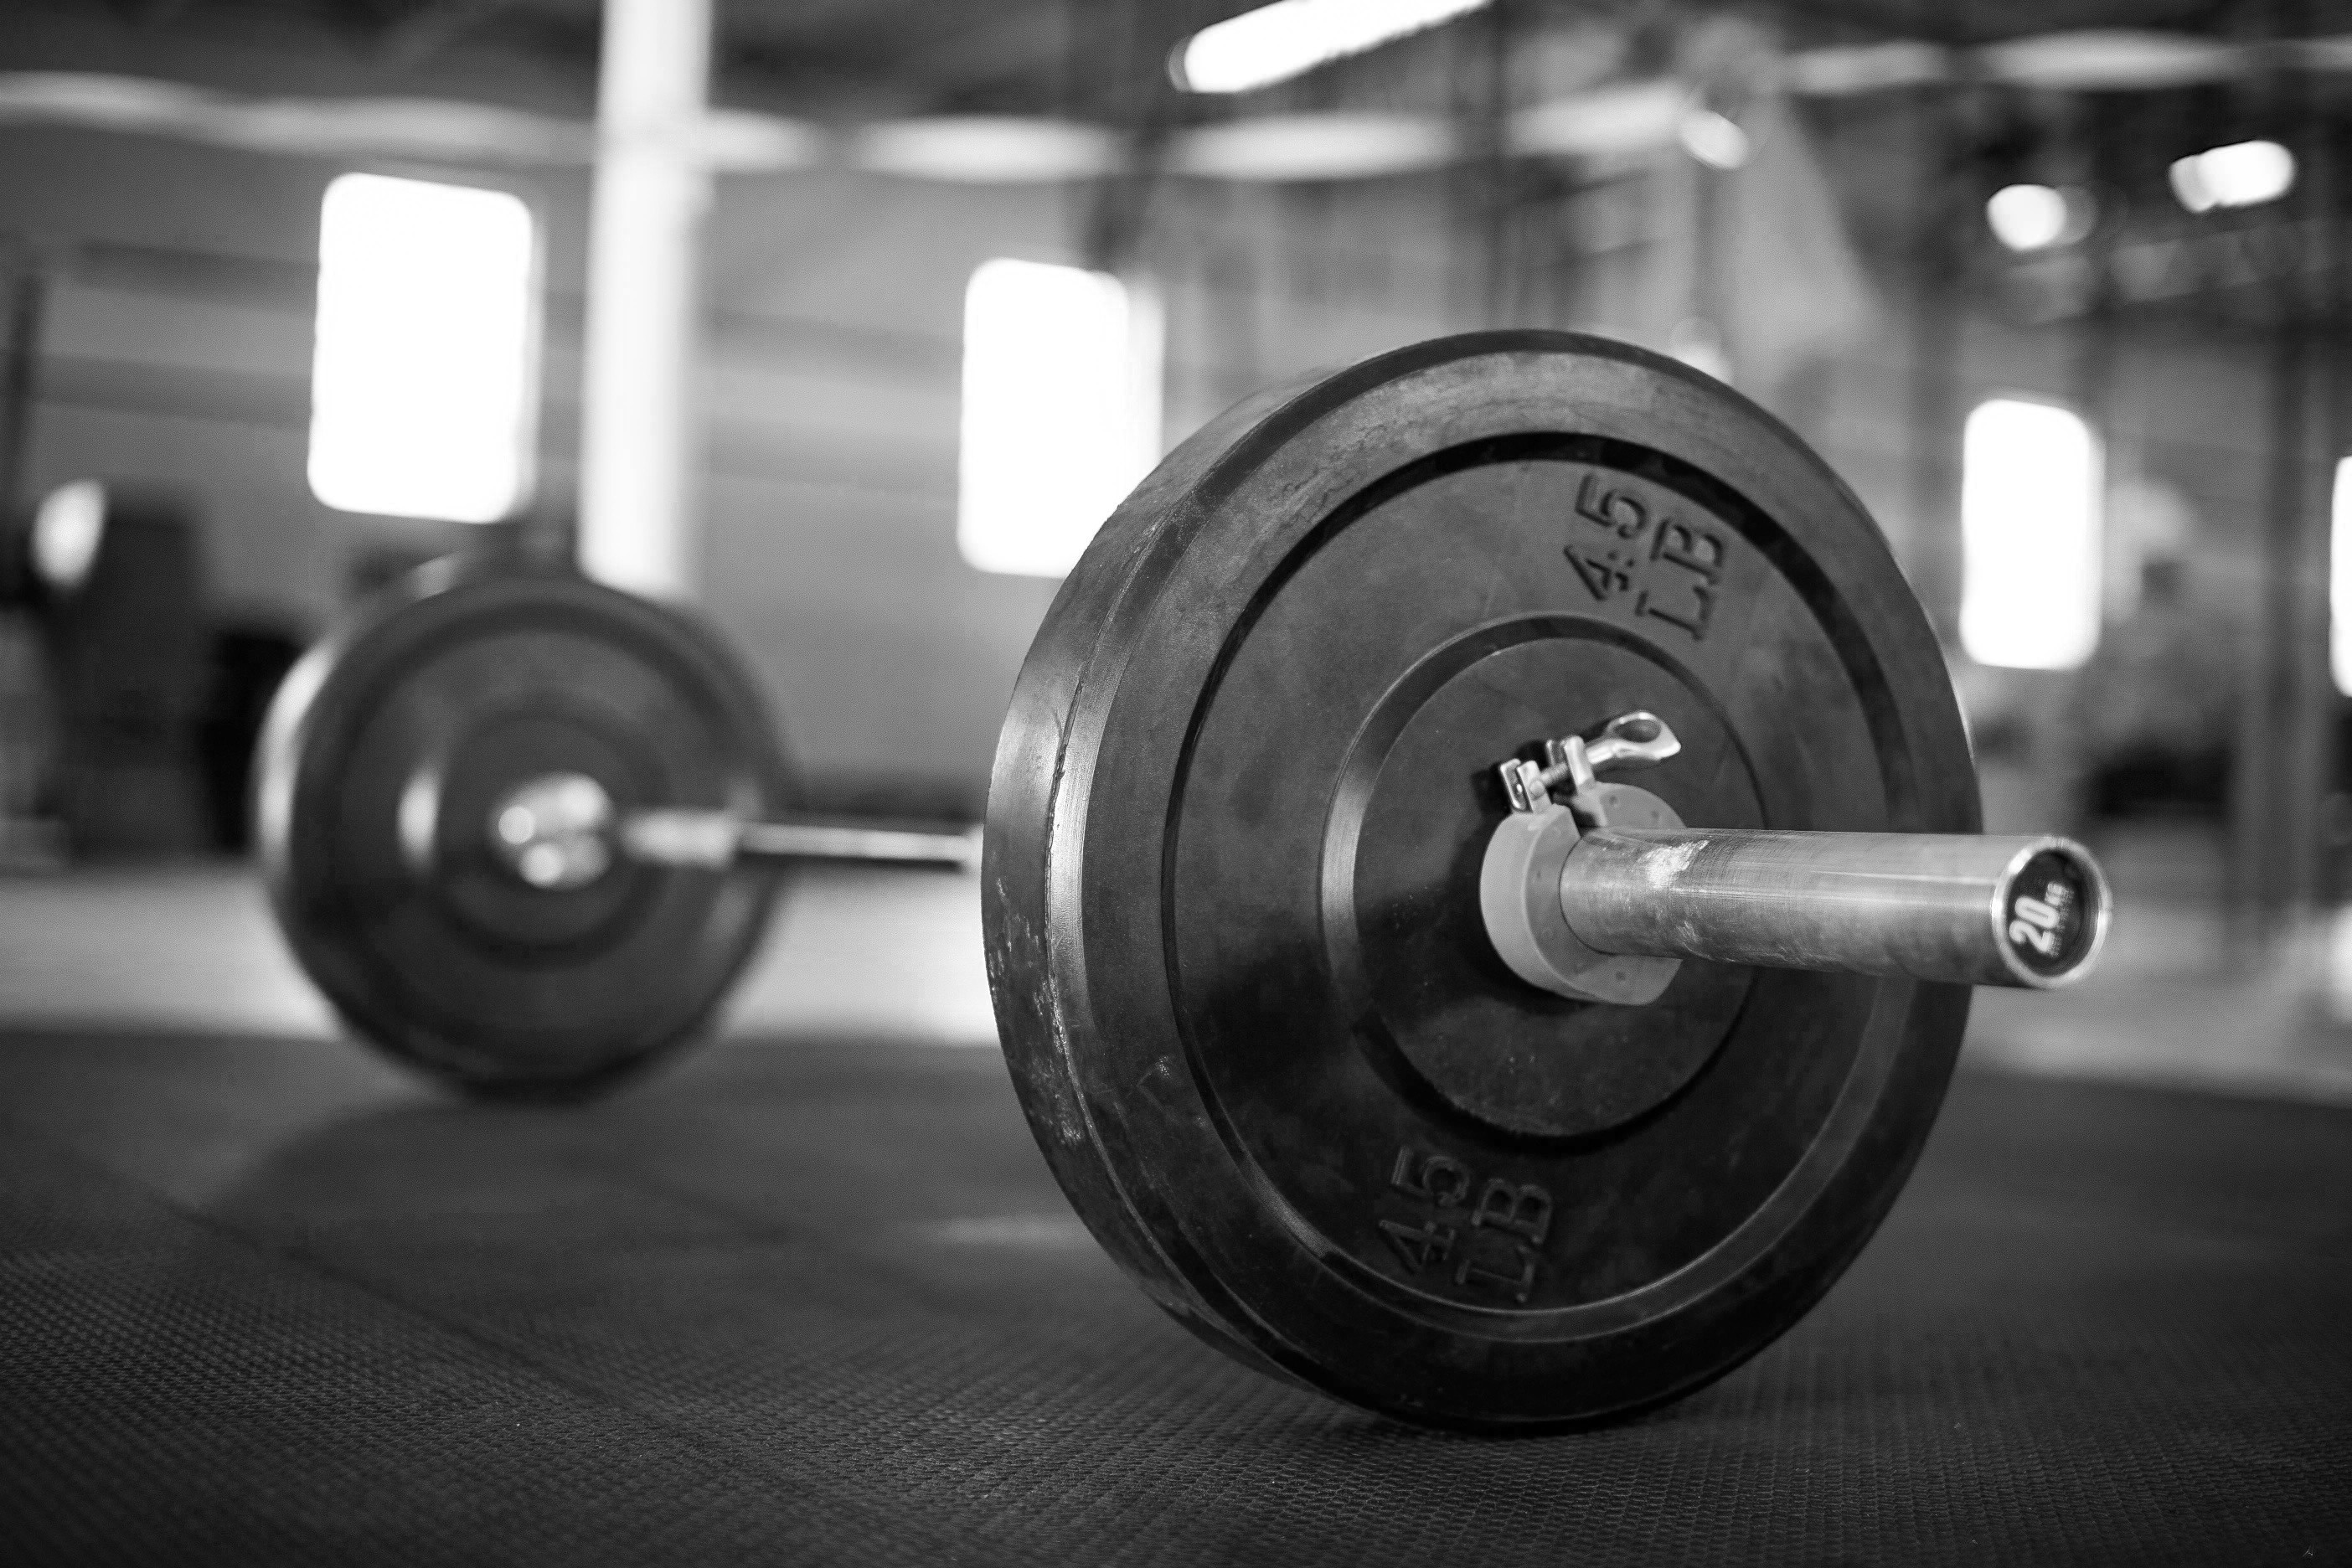 blog-lesson-from-barbell-main.jpg (2808×1872) | 3D Environment Pitch |  Pinterest | Crossfit